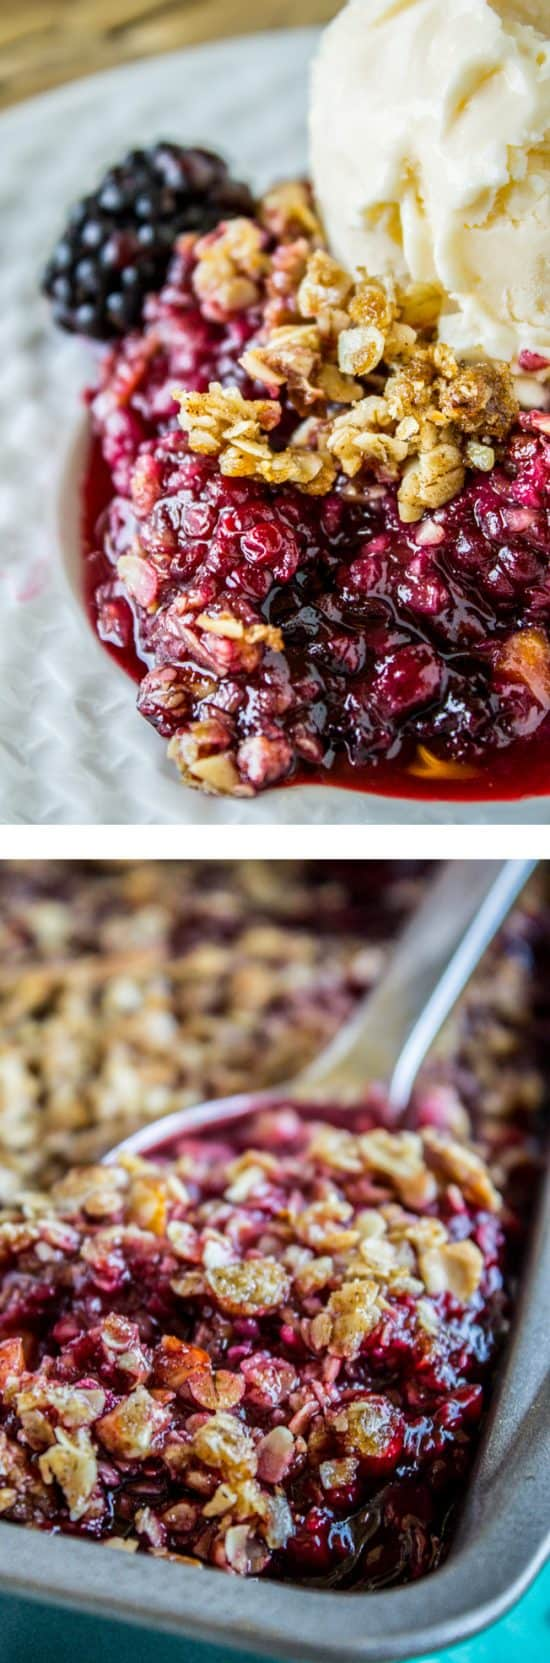 Easy Blackberry Cobbler with Oat Crunch Topping from the Food Charlatan